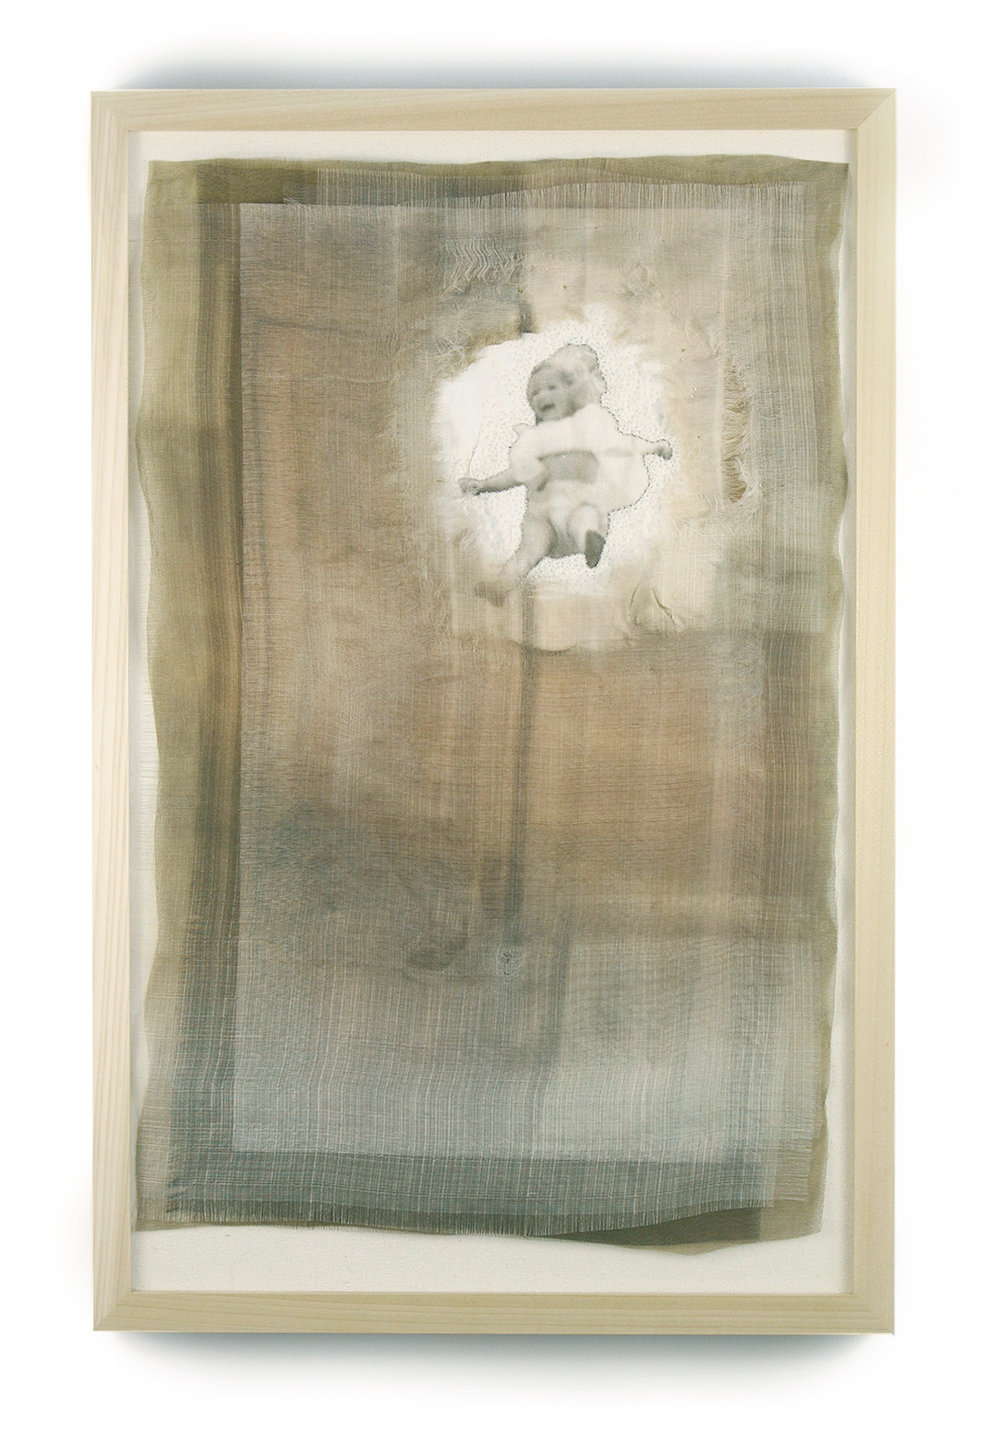 You Dreamed    Digital print, hand embroidery on silk, linen, hand dyed silk   2016